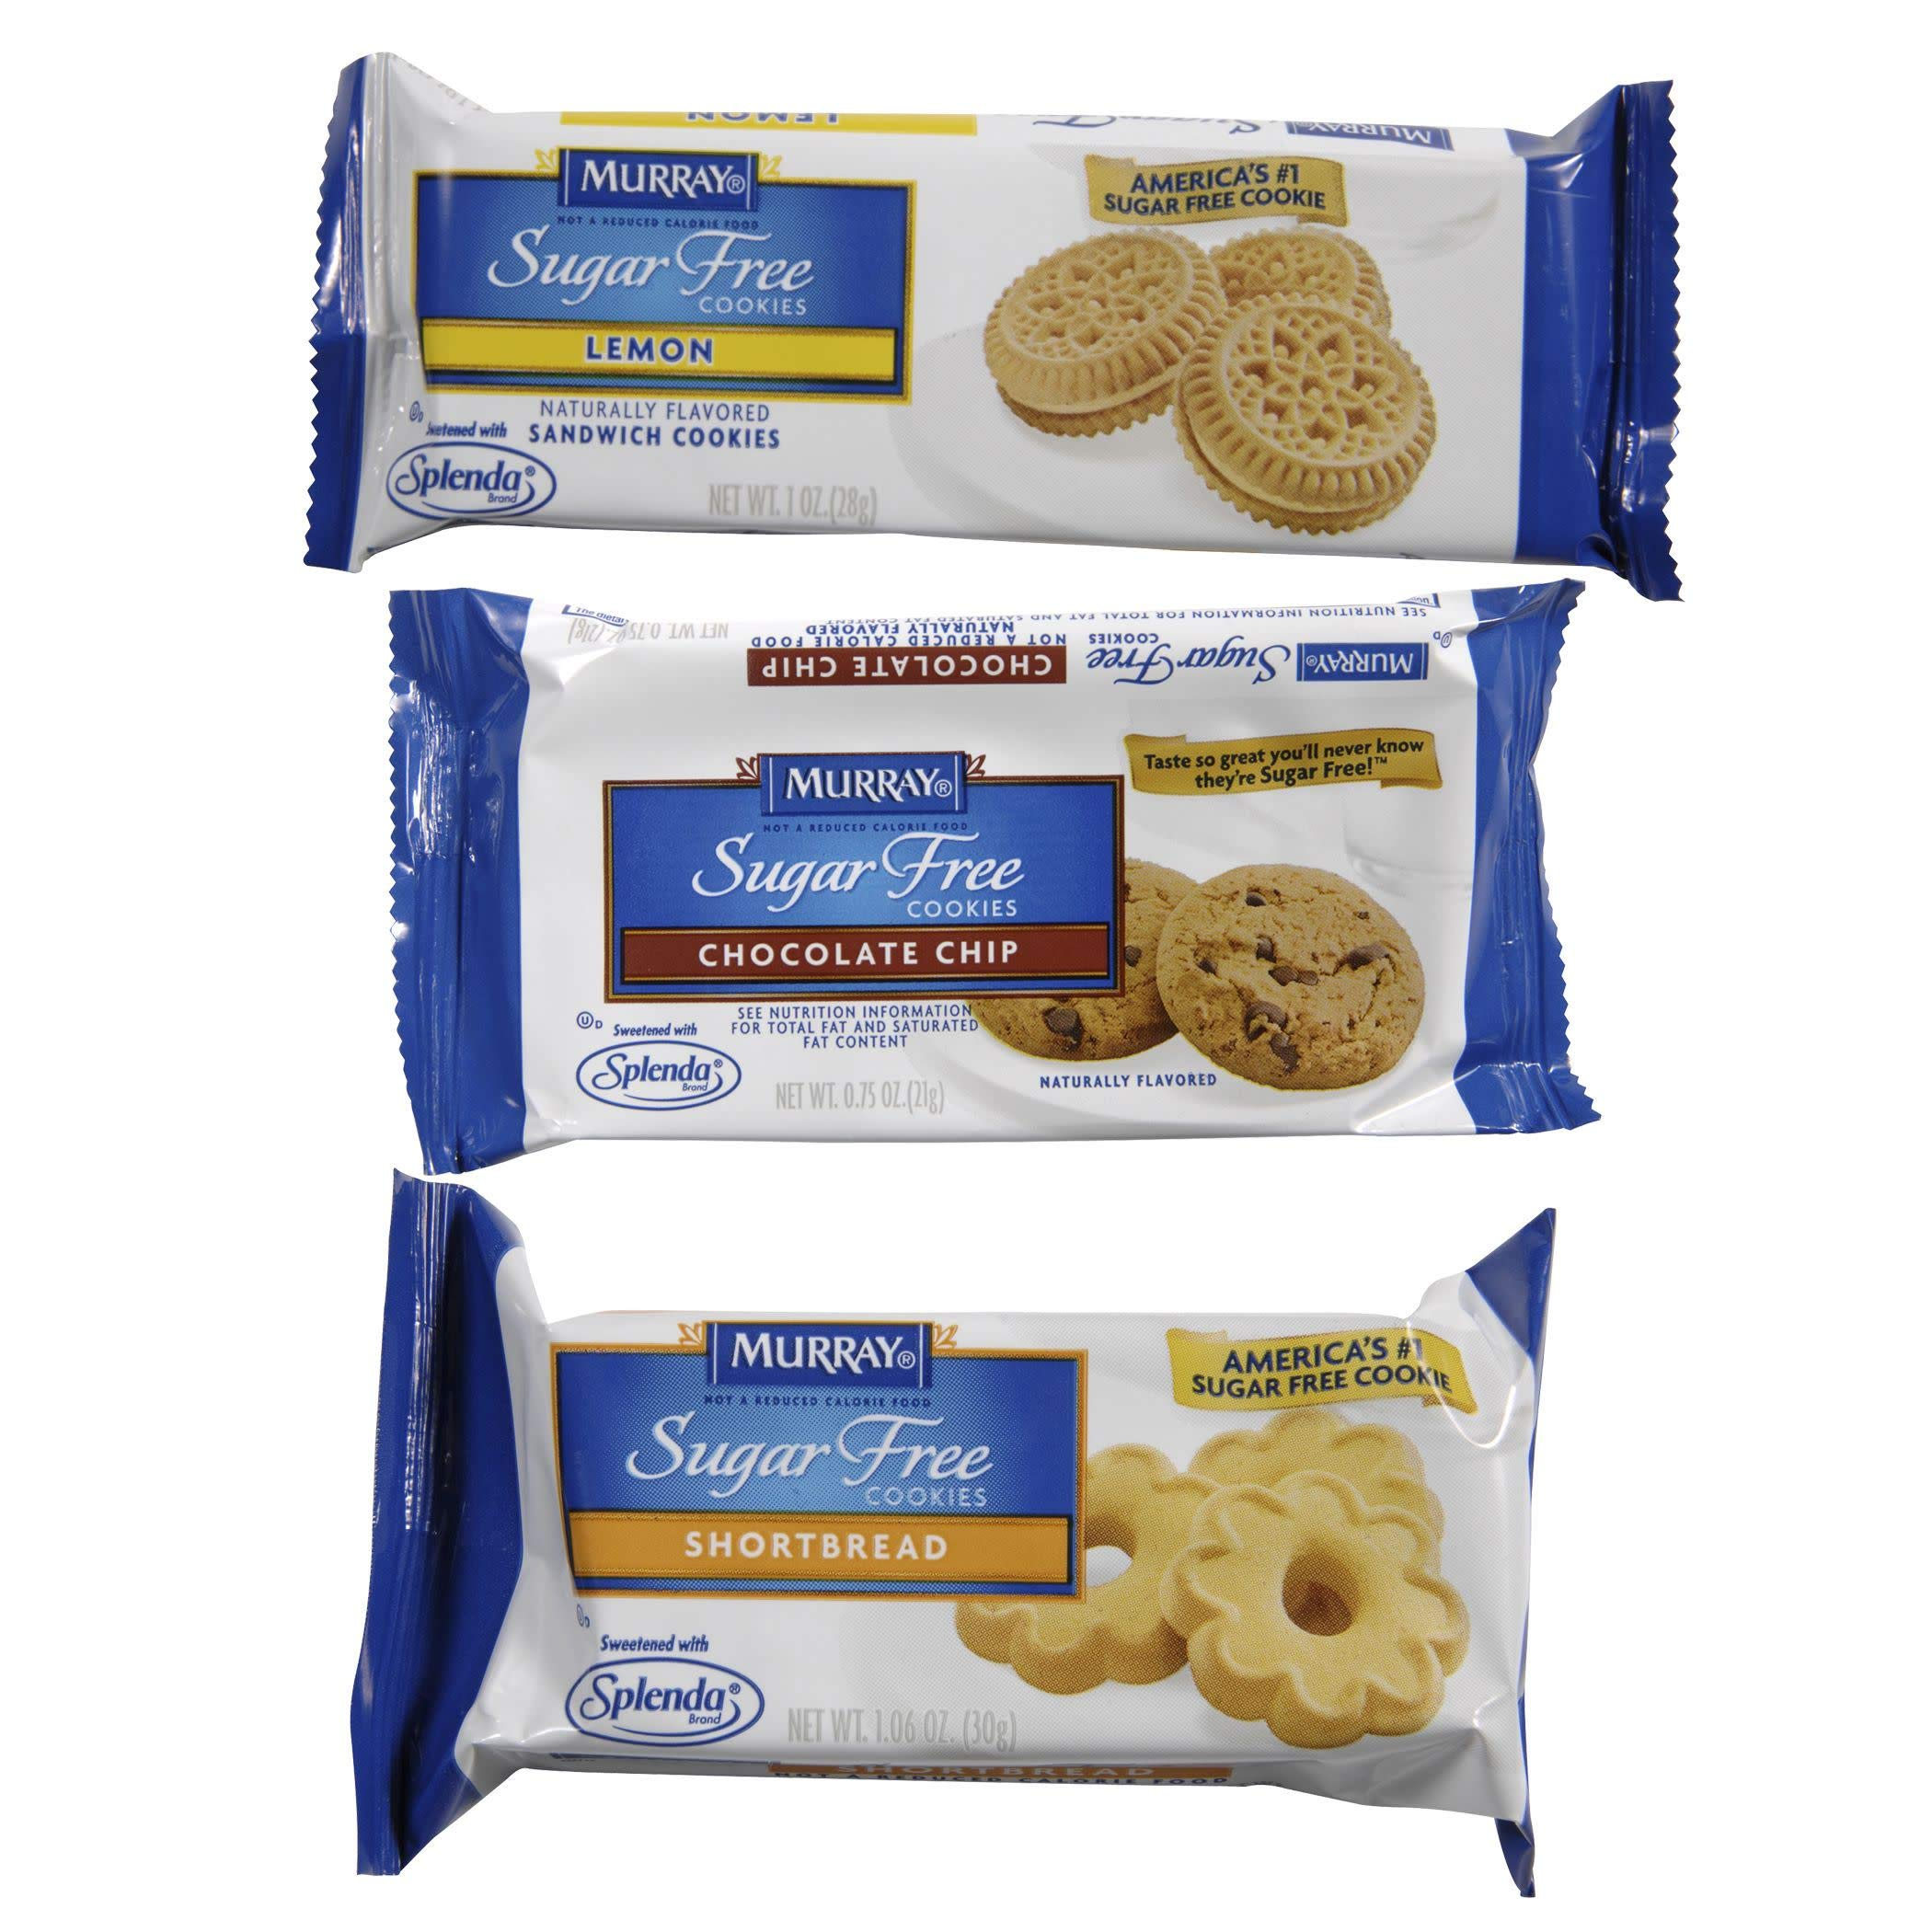 Murray Sugar Free Cookies Variety Single Serve Packs (Pack of 120) (Packaging May Vary) by Murray